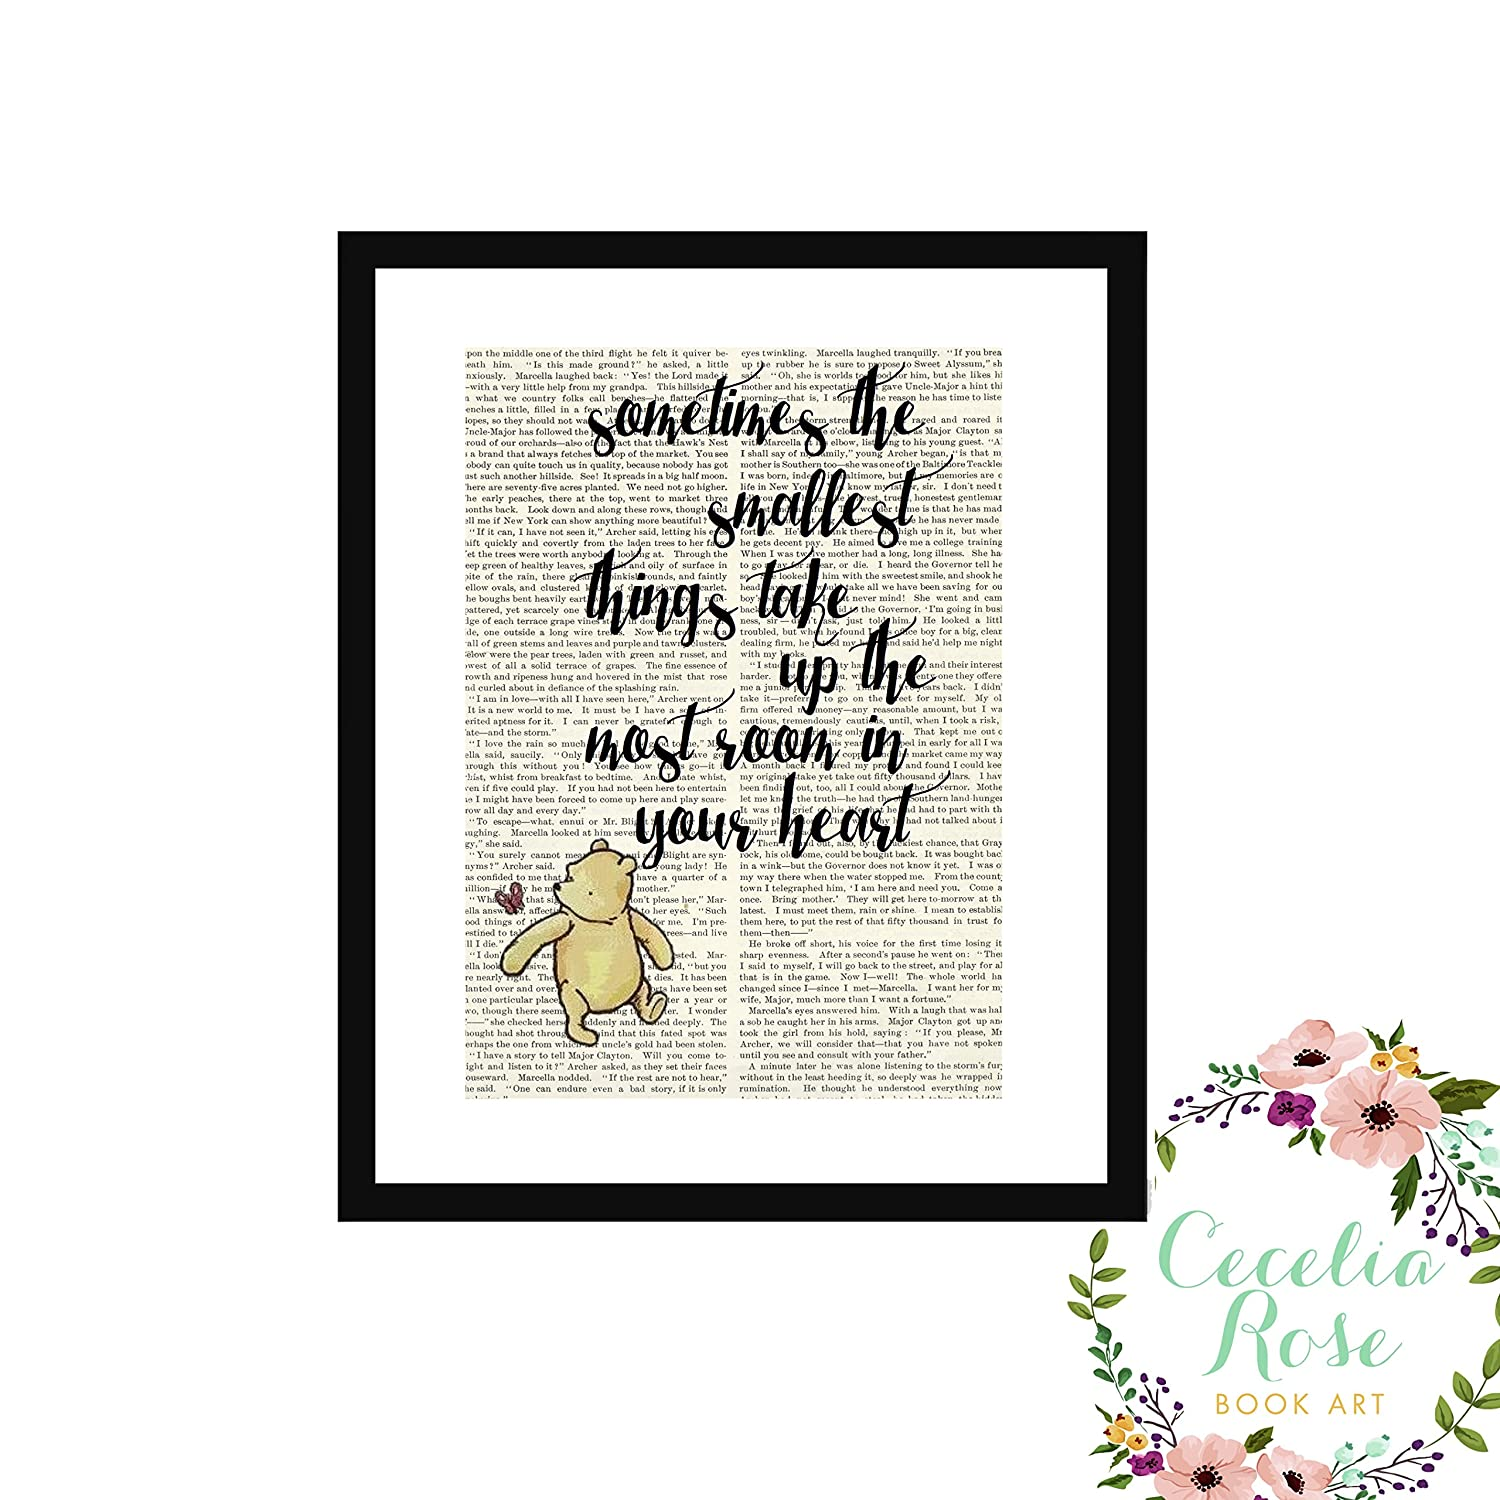 Sometimes the smallest things take up the most room in your heart Winnie the Pooh A A Milne Children's Nursery Farmhouse Literary Typography Vintage Book Page 8x10 Unframed Print